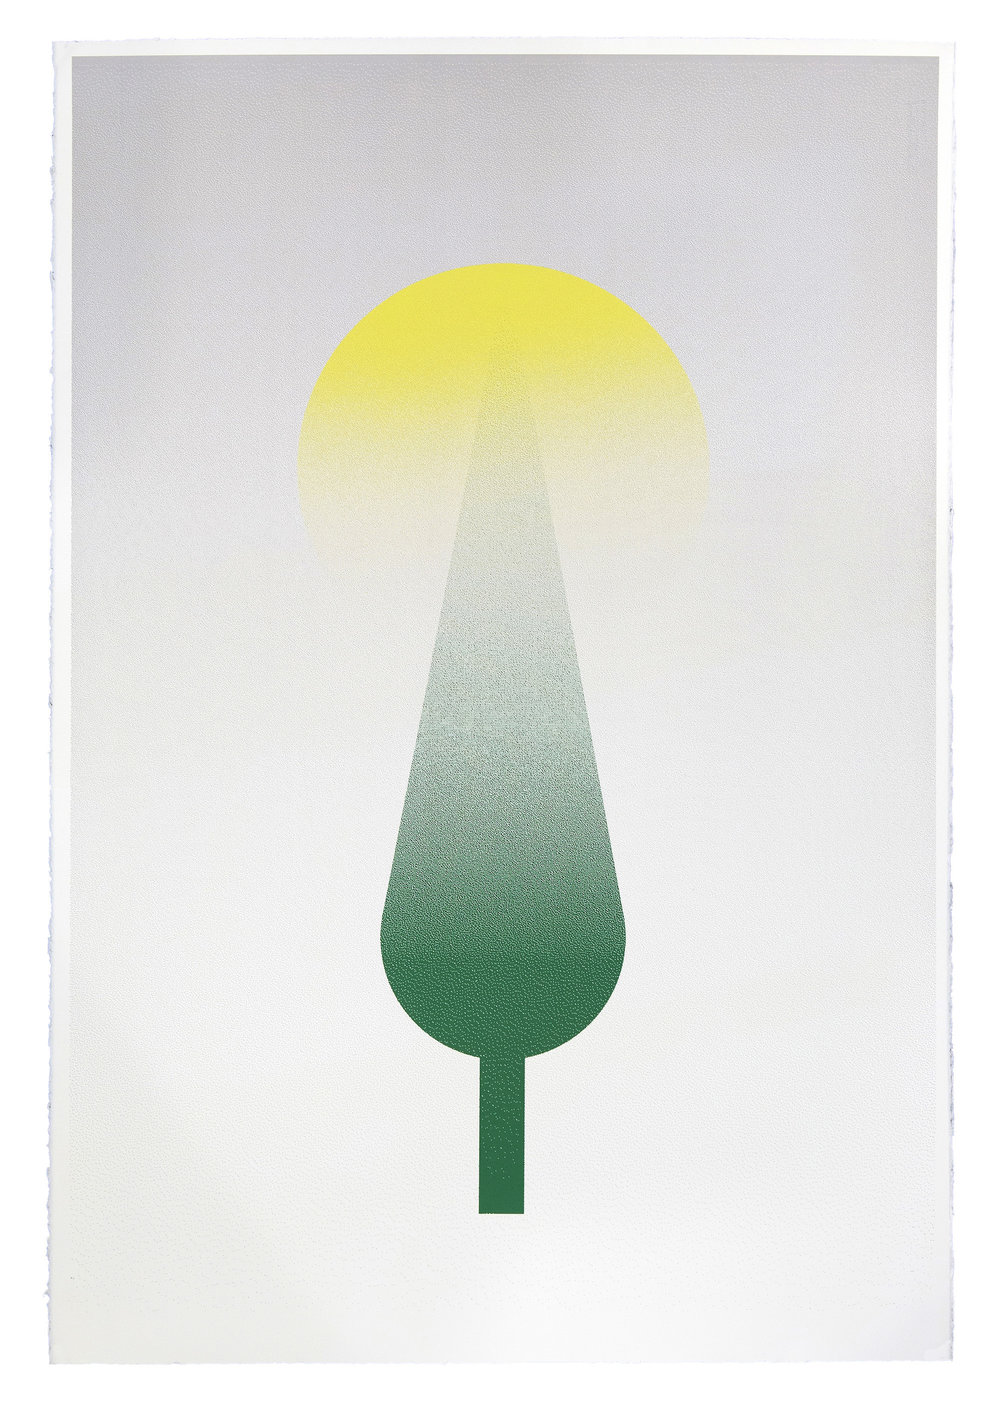 Fahd Burki   Toward Light 2013 Screen print on paper 112.5 x 76.5 cm